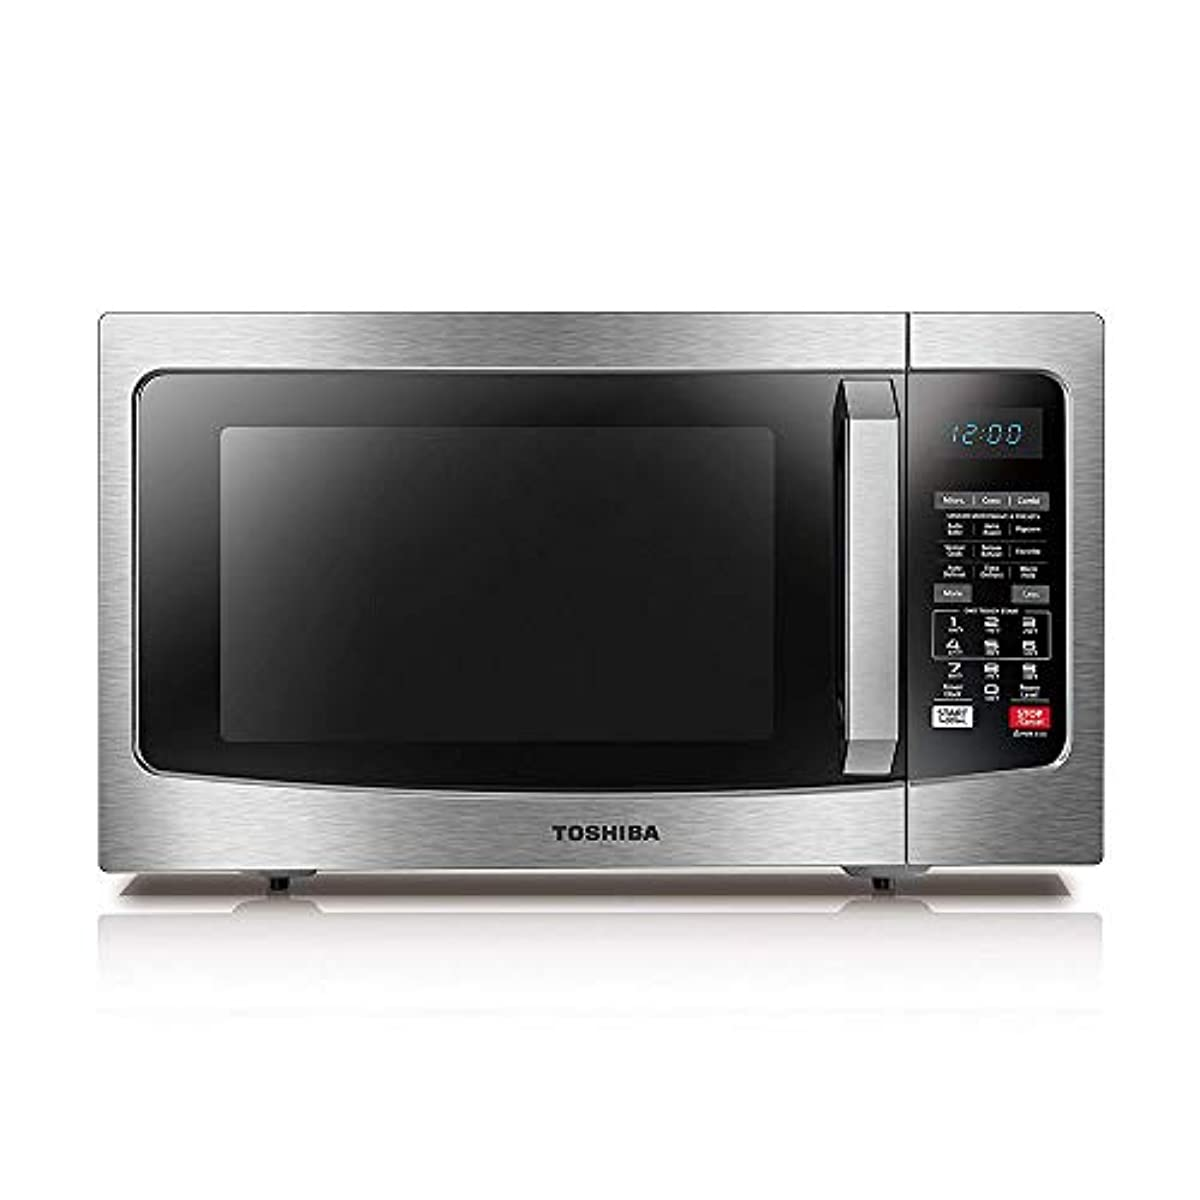 Microwave Oven With Convection Function: Toshiba EC042A5C-SS Microwave Oven With Convection